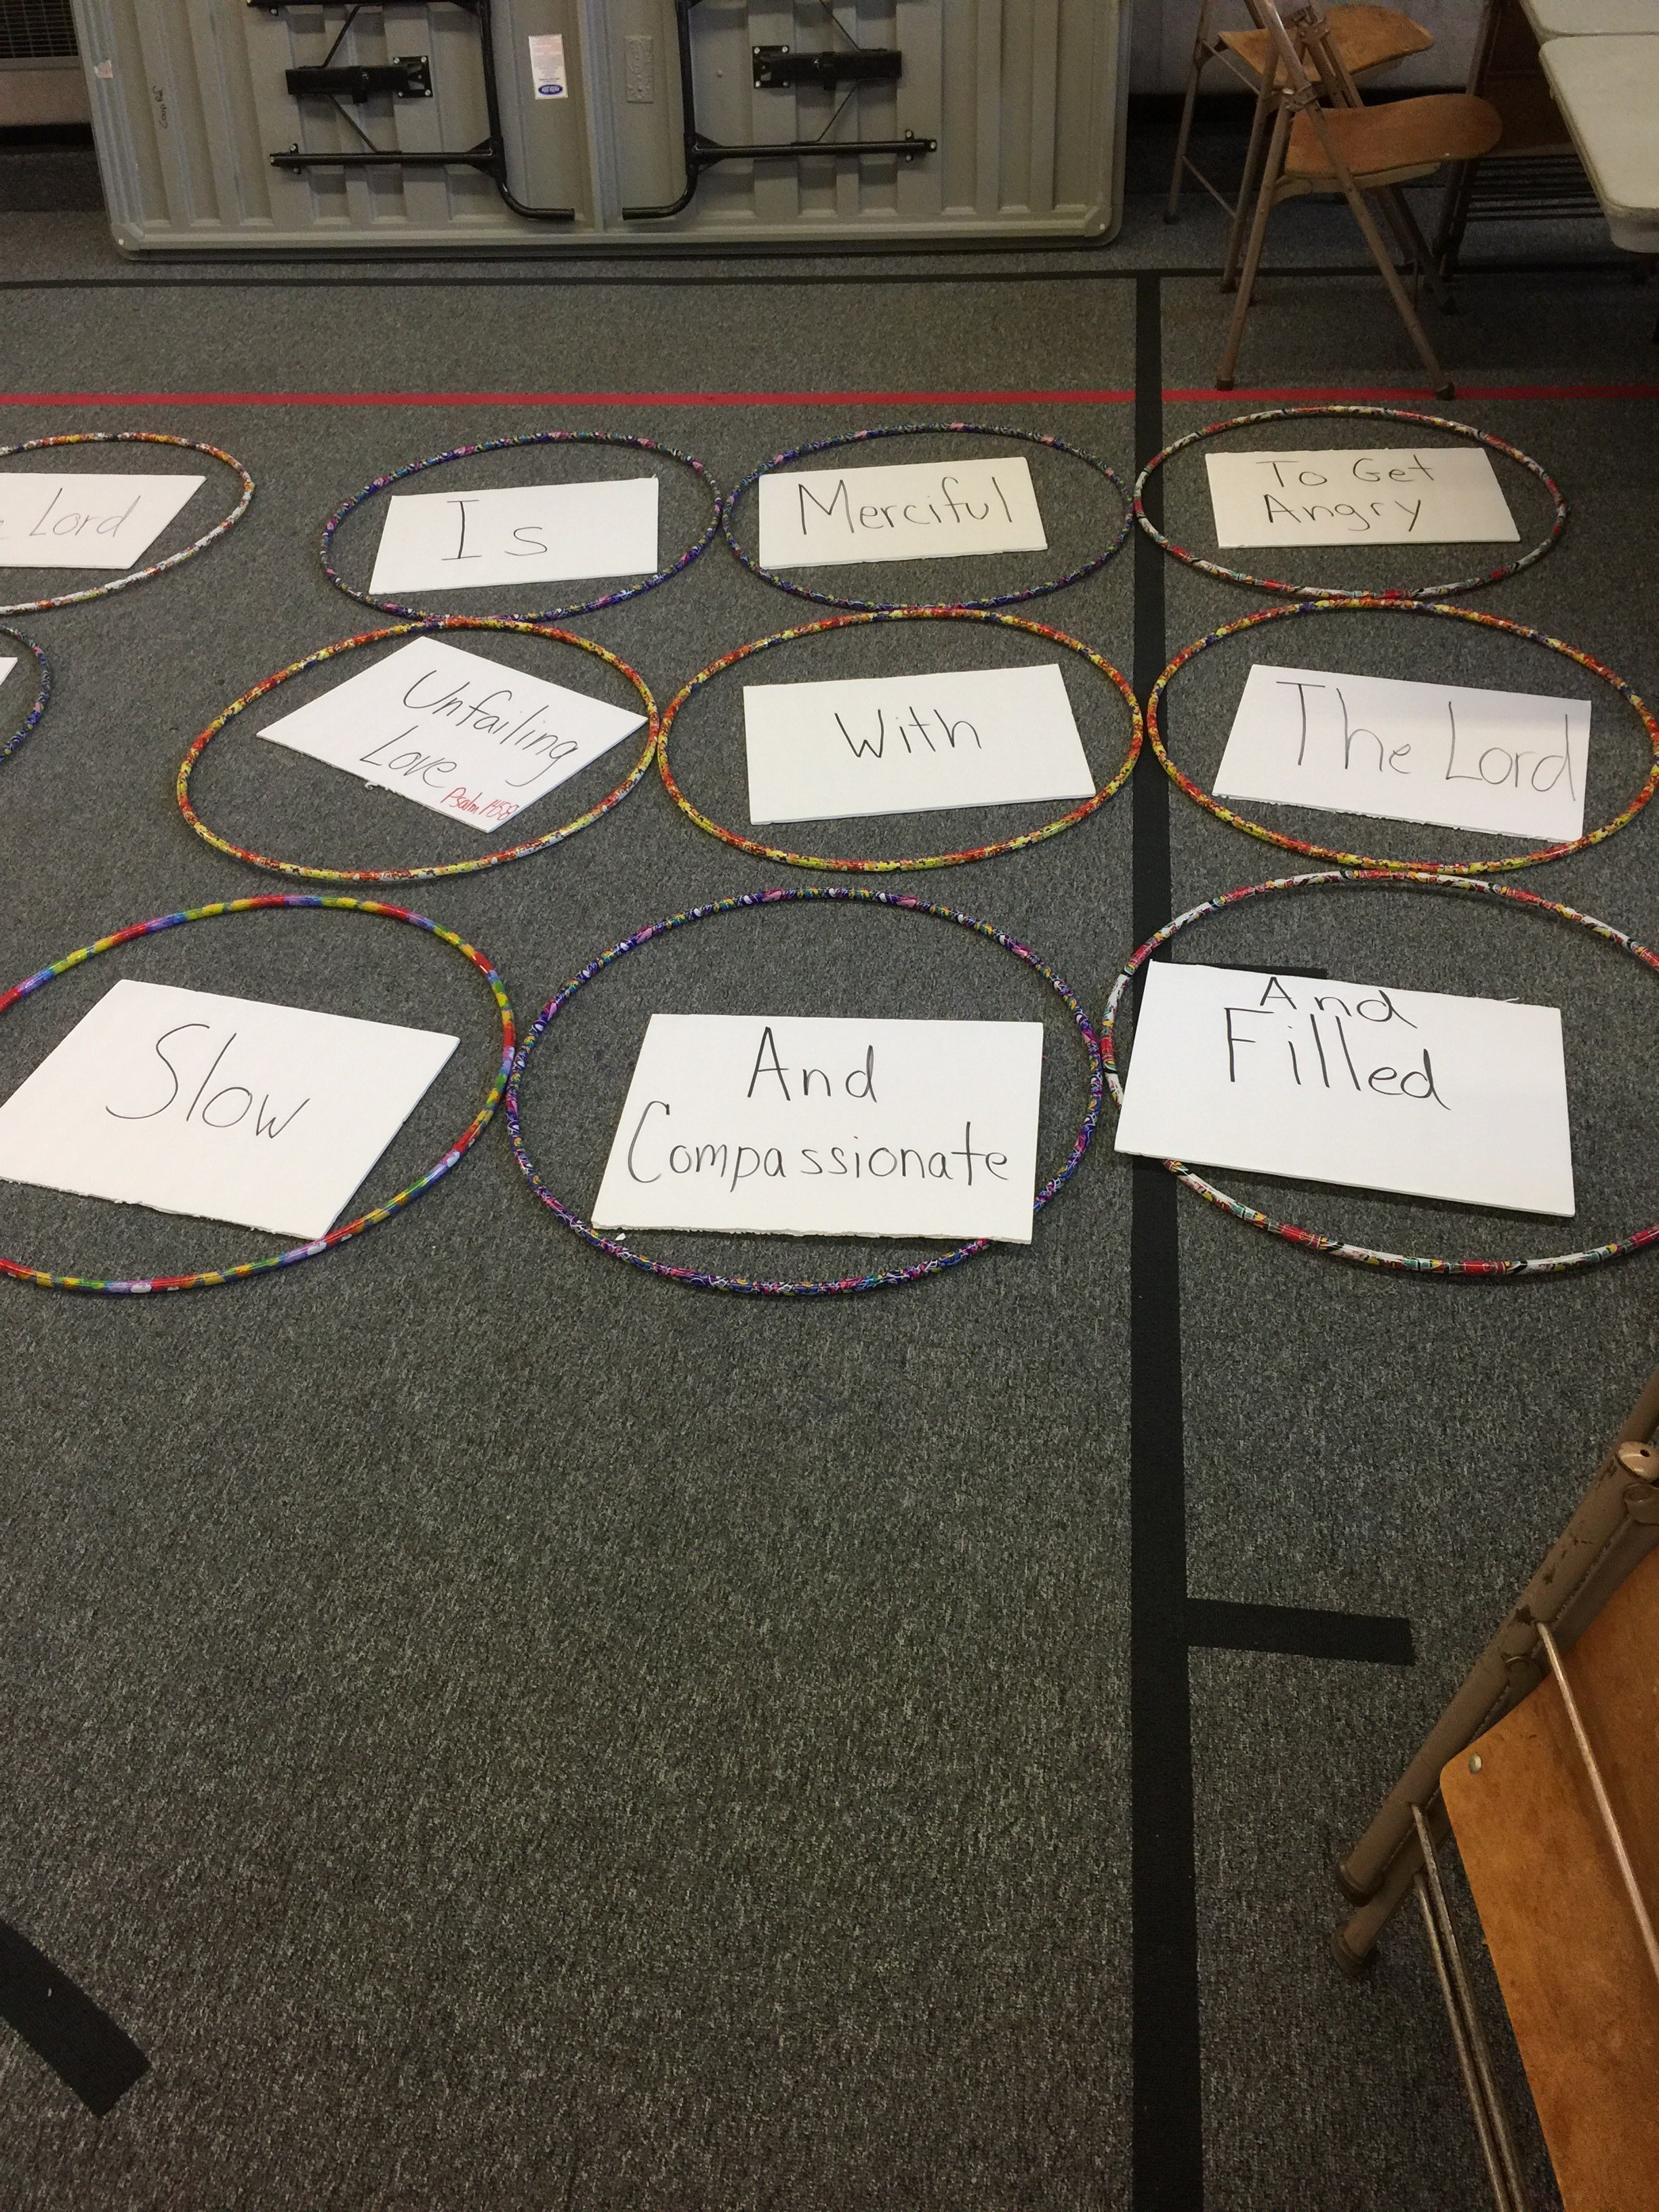 We had to unscramble a verse about forgiveness in teams.